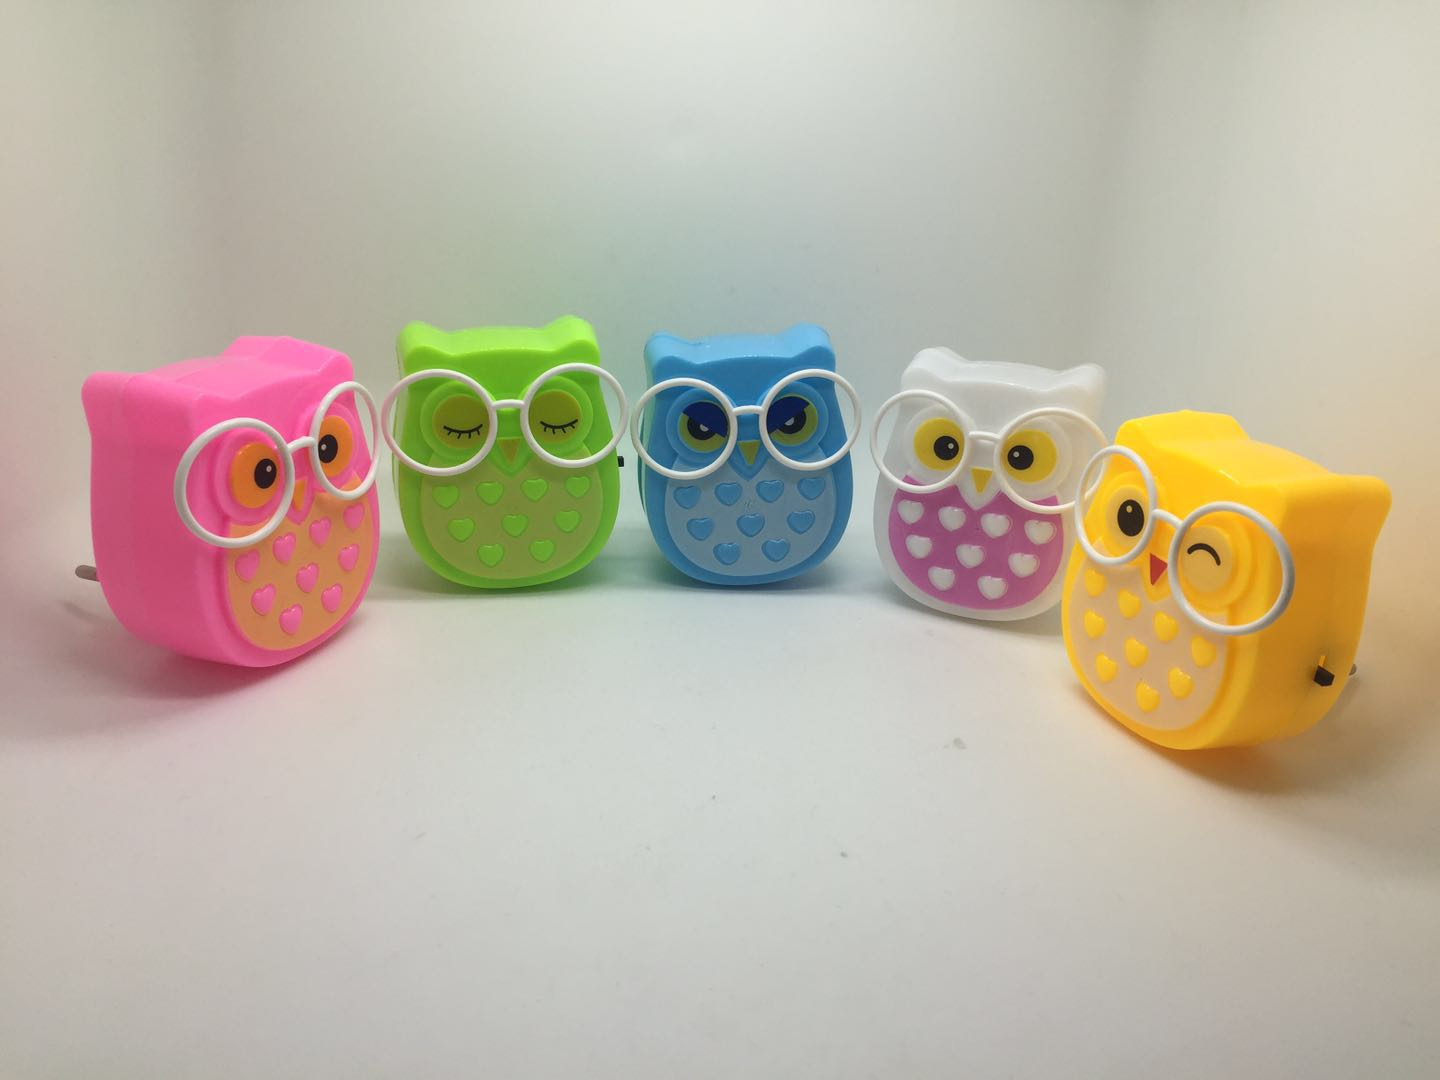 OEM W090 4SMD mini switch plug in room usage Owl shape night light For Baby Bedroom cute gift